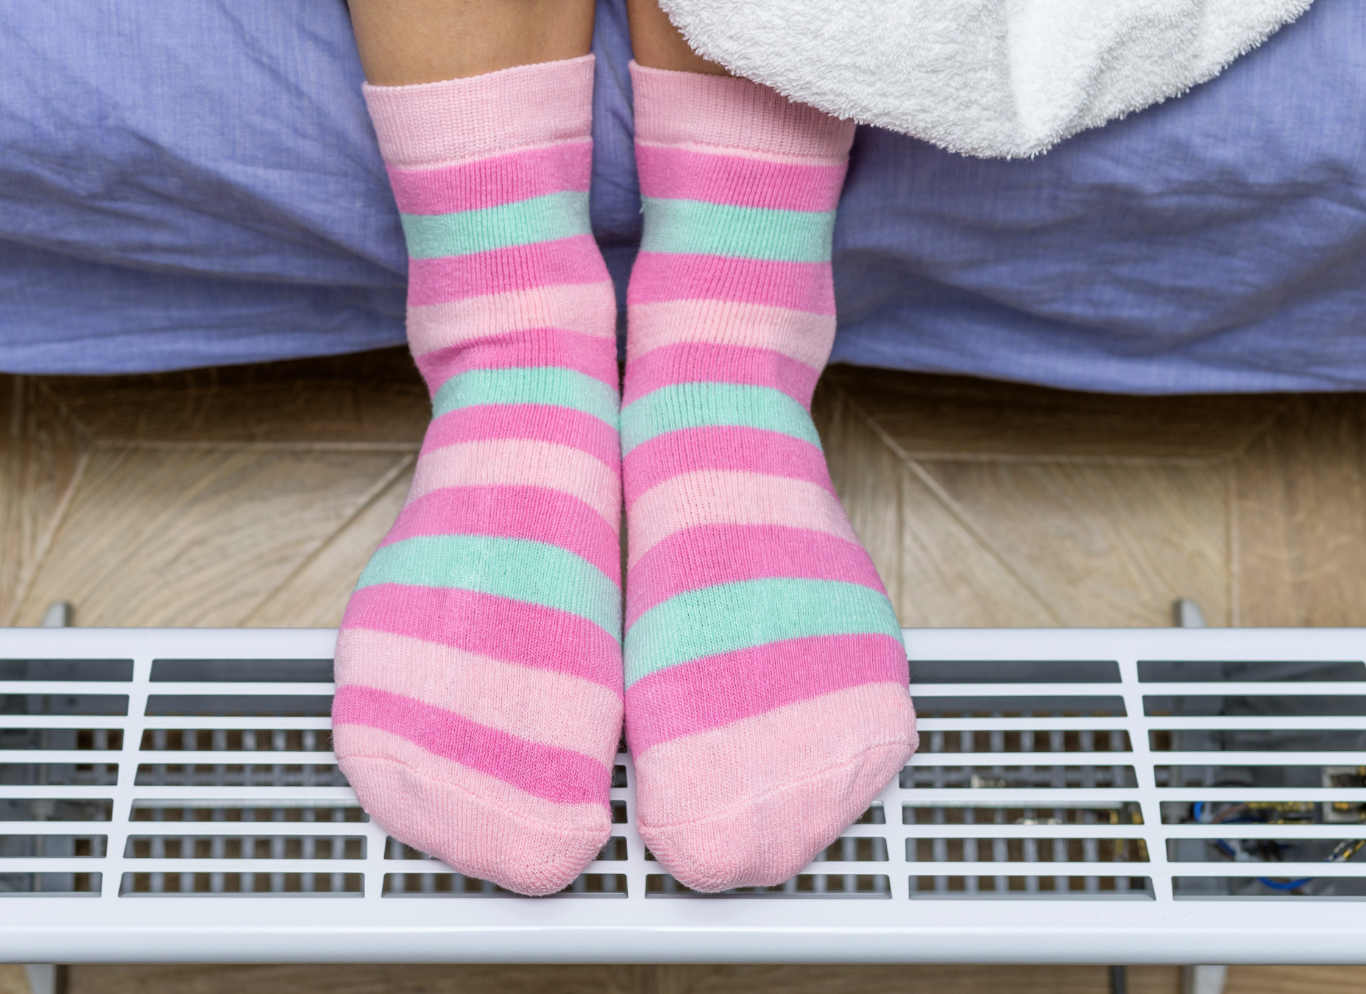 Why wear wet socks to bed?